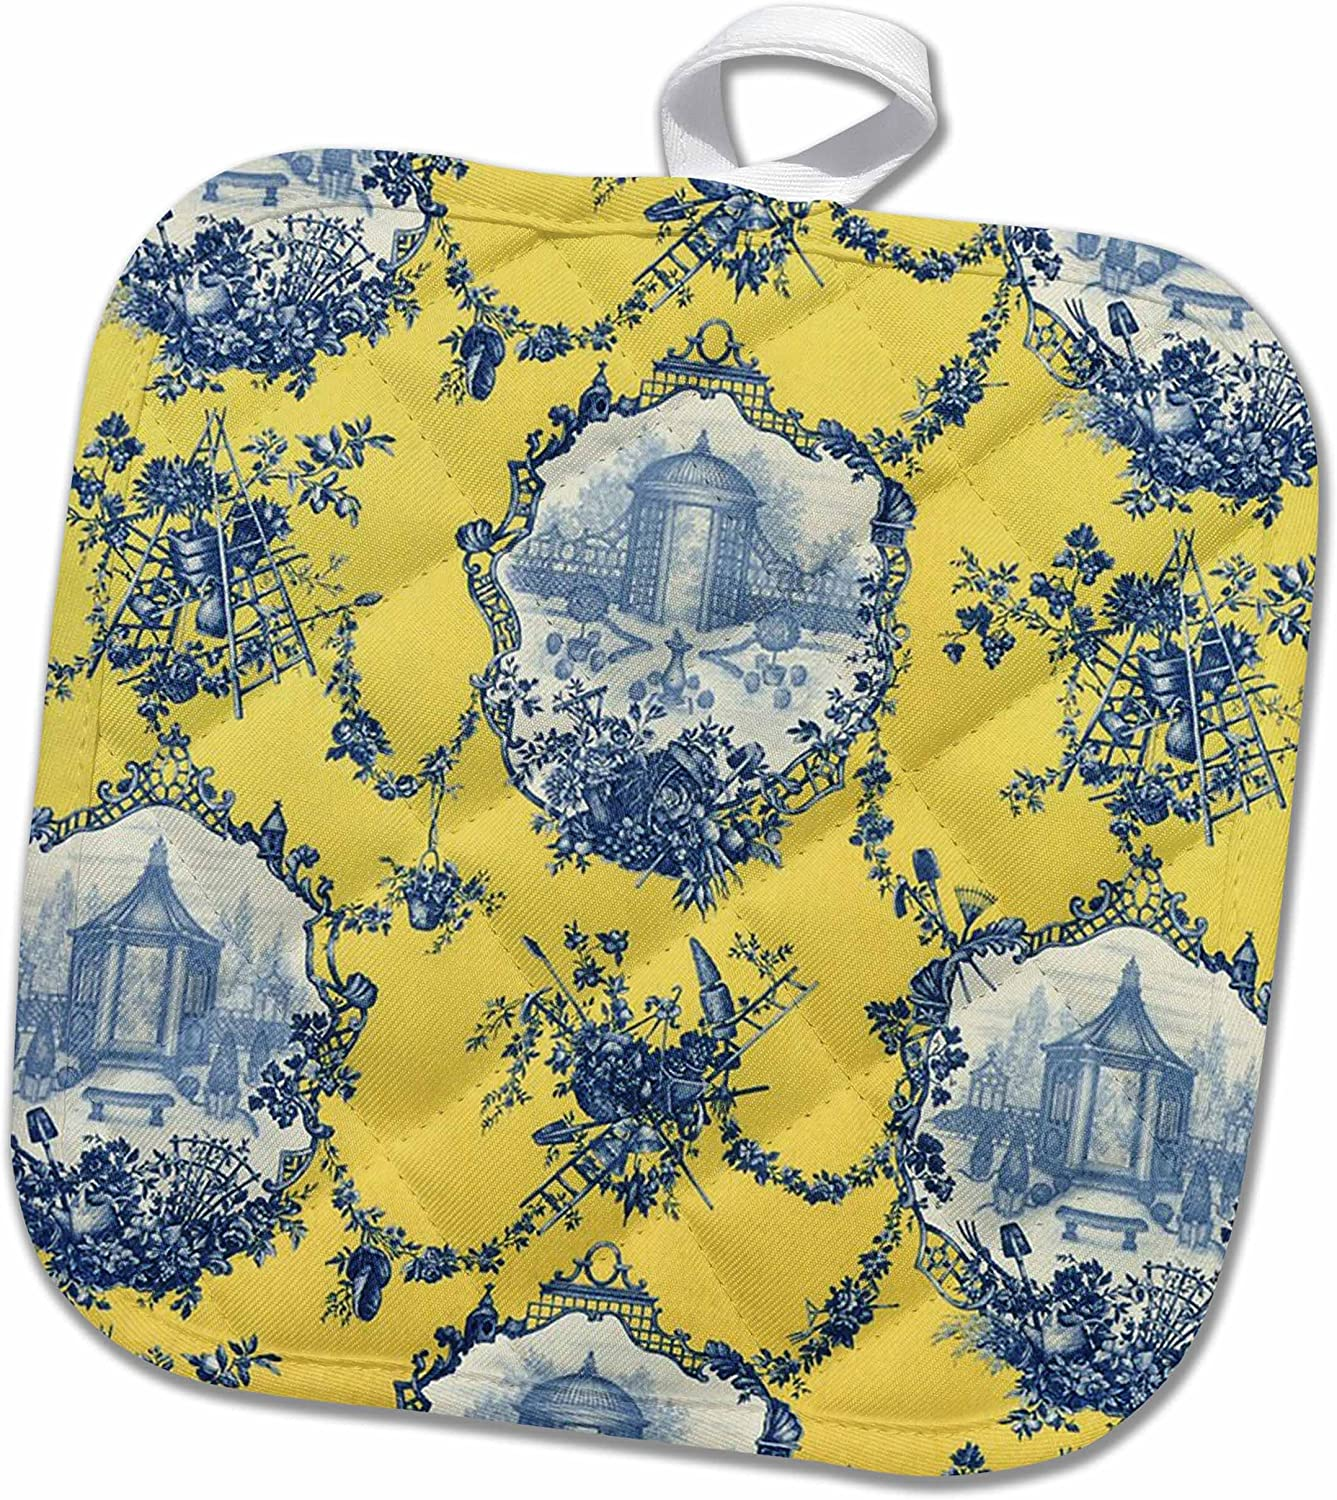 3D Rose Garden French Yellow and Blue. Popular Toile Print. Pot Holder, 8 x 8